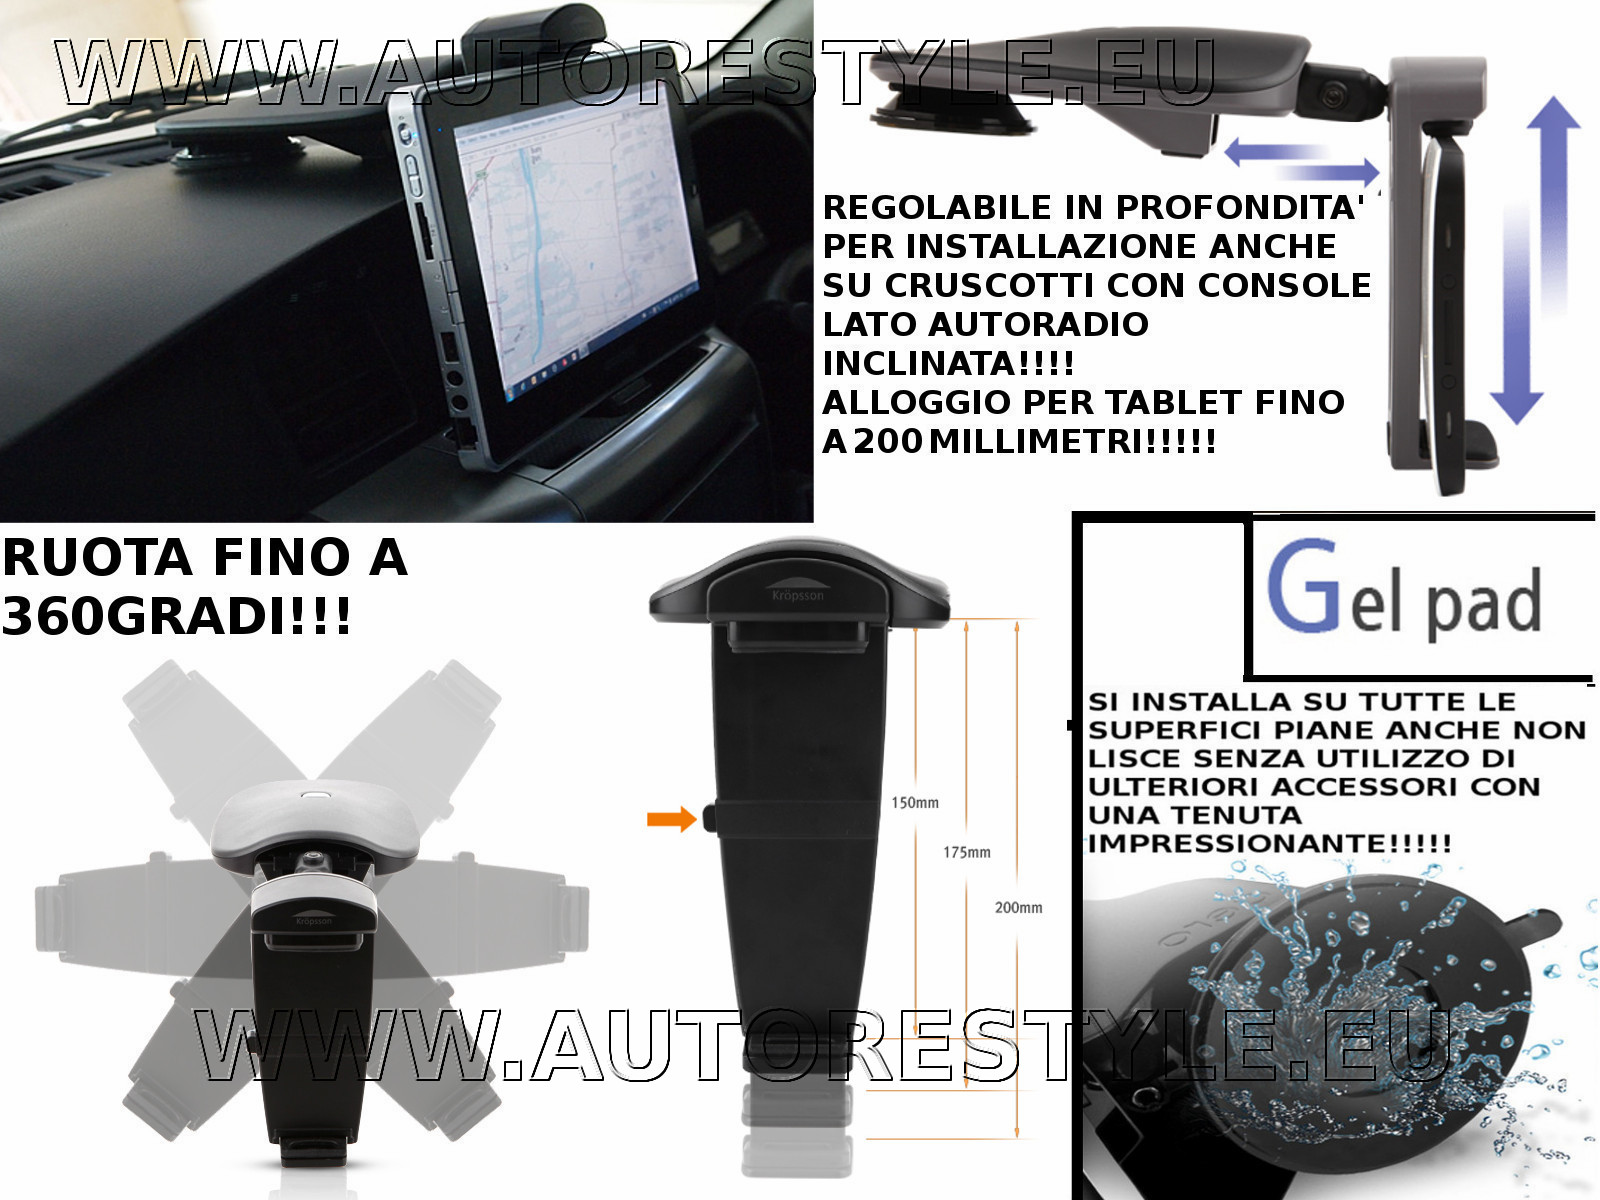 HR-P850FTP SUPPORTO TABLET Nexus Galaxy TAB Note&Note2, Optimus Pad IPAD SISTEMA GEL PAD KINDLE MICROSOFT SURFACE